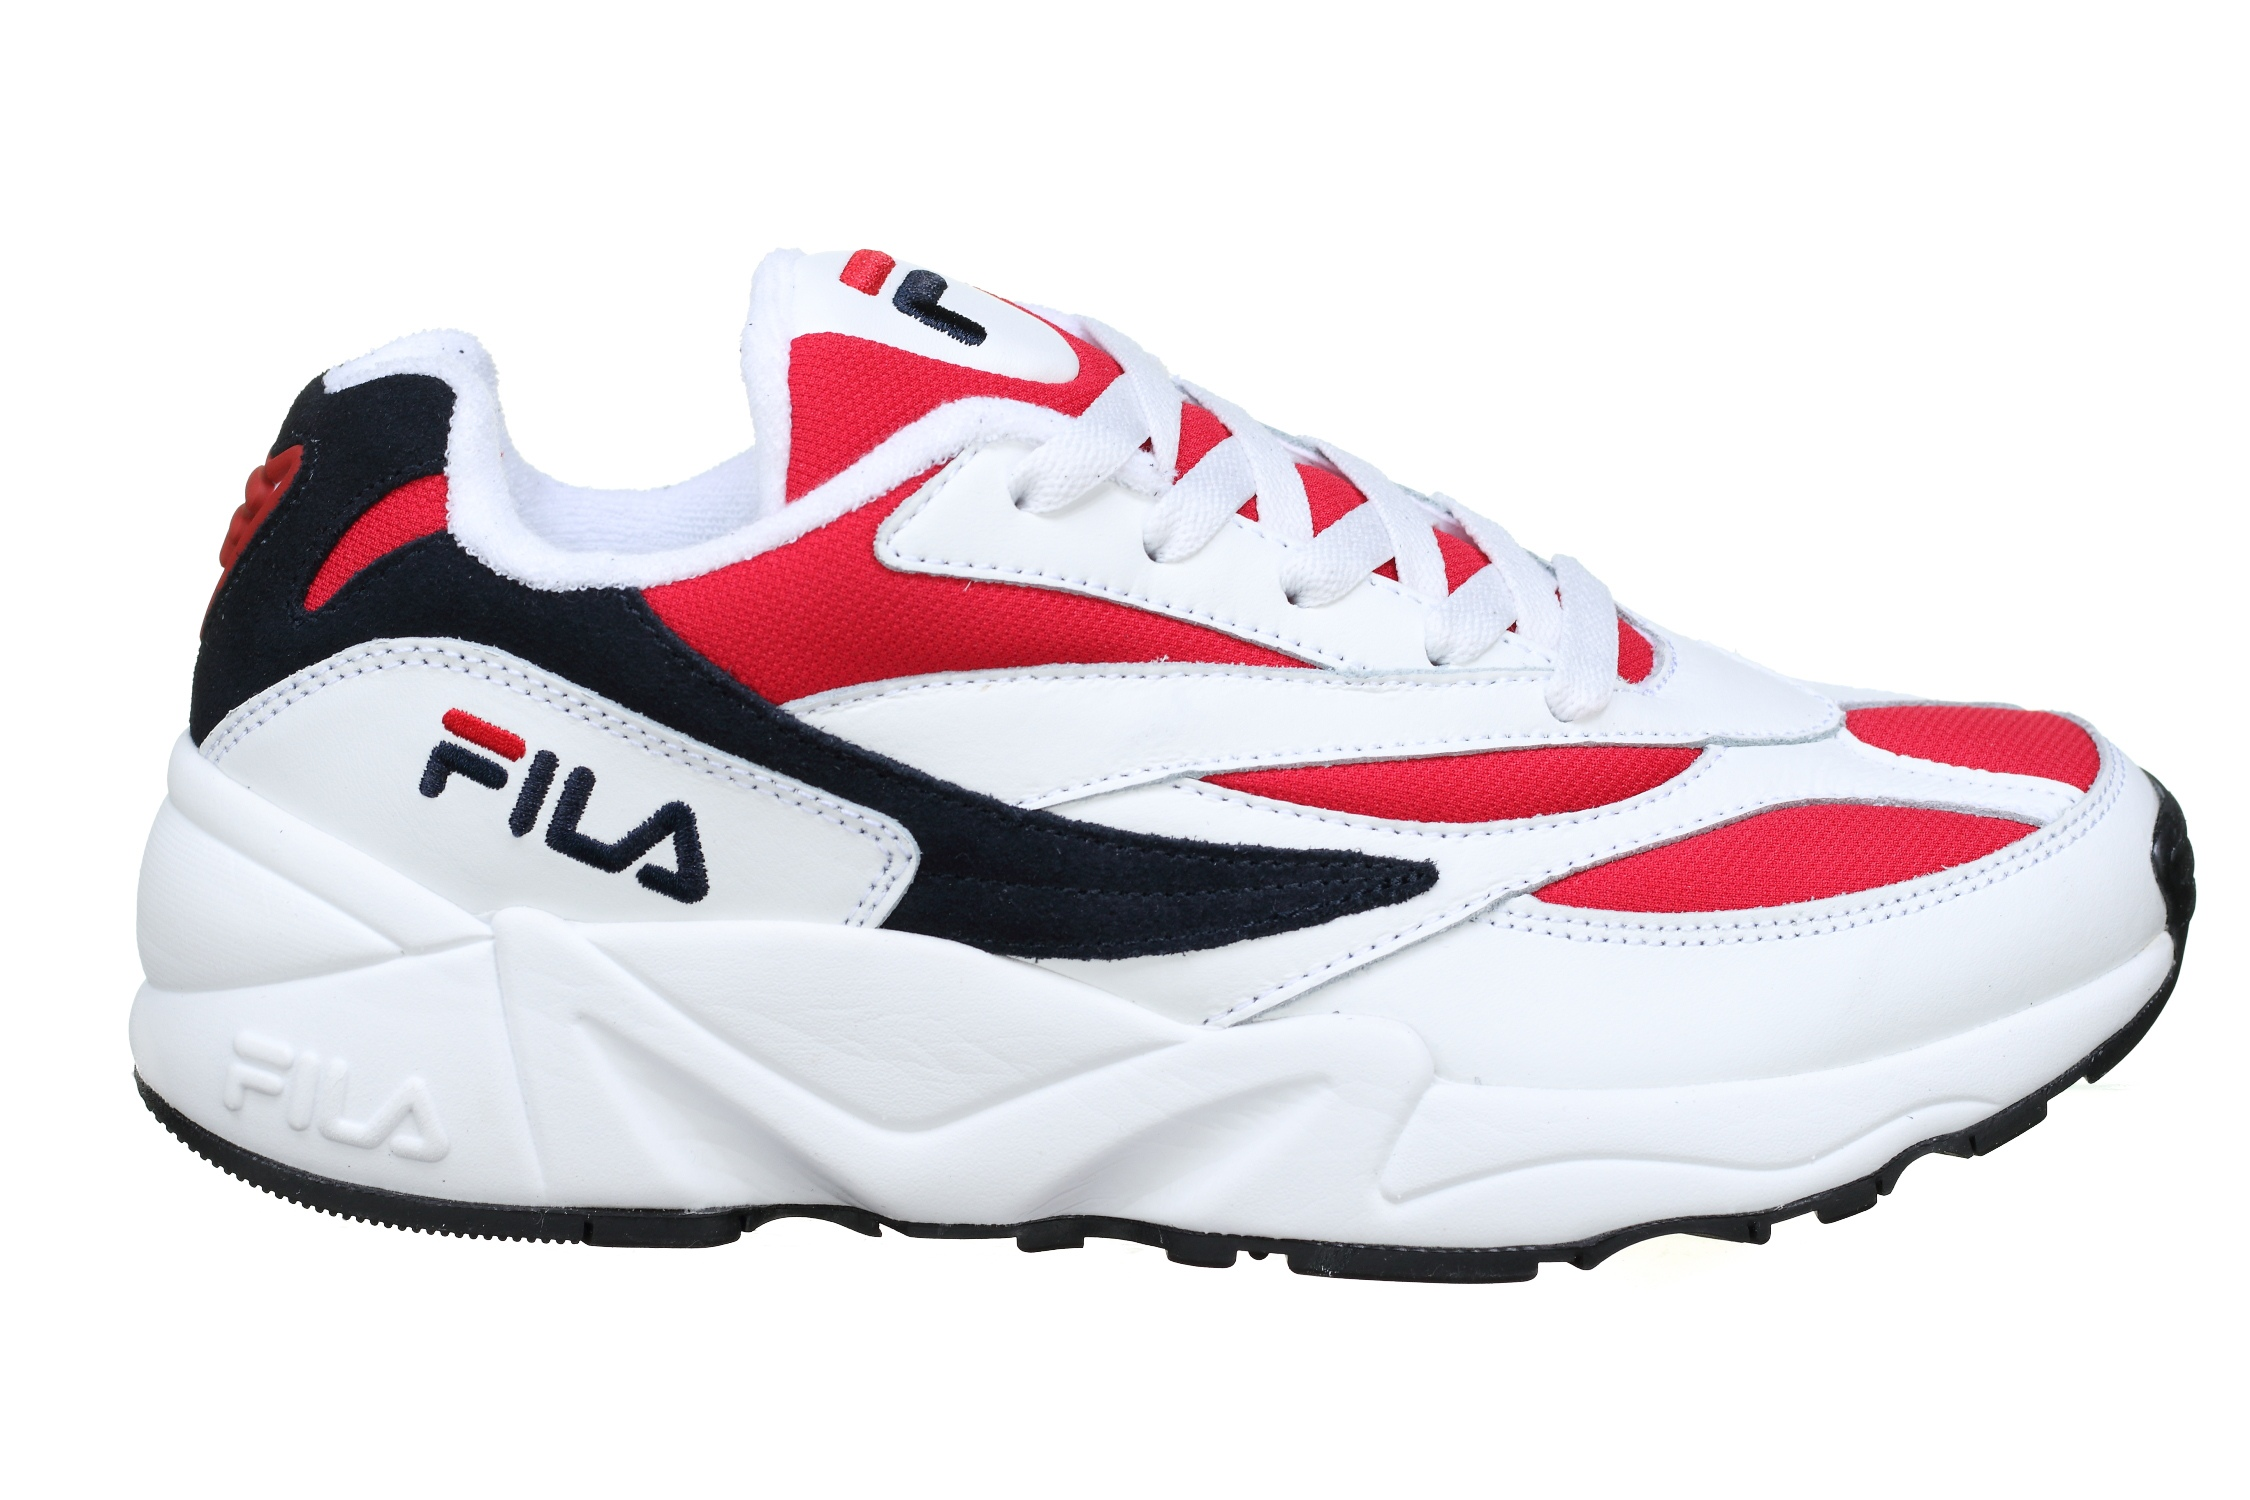 https://www.leadermode.com/164630/fila-v94m-low-150-blanc-navy.jpg